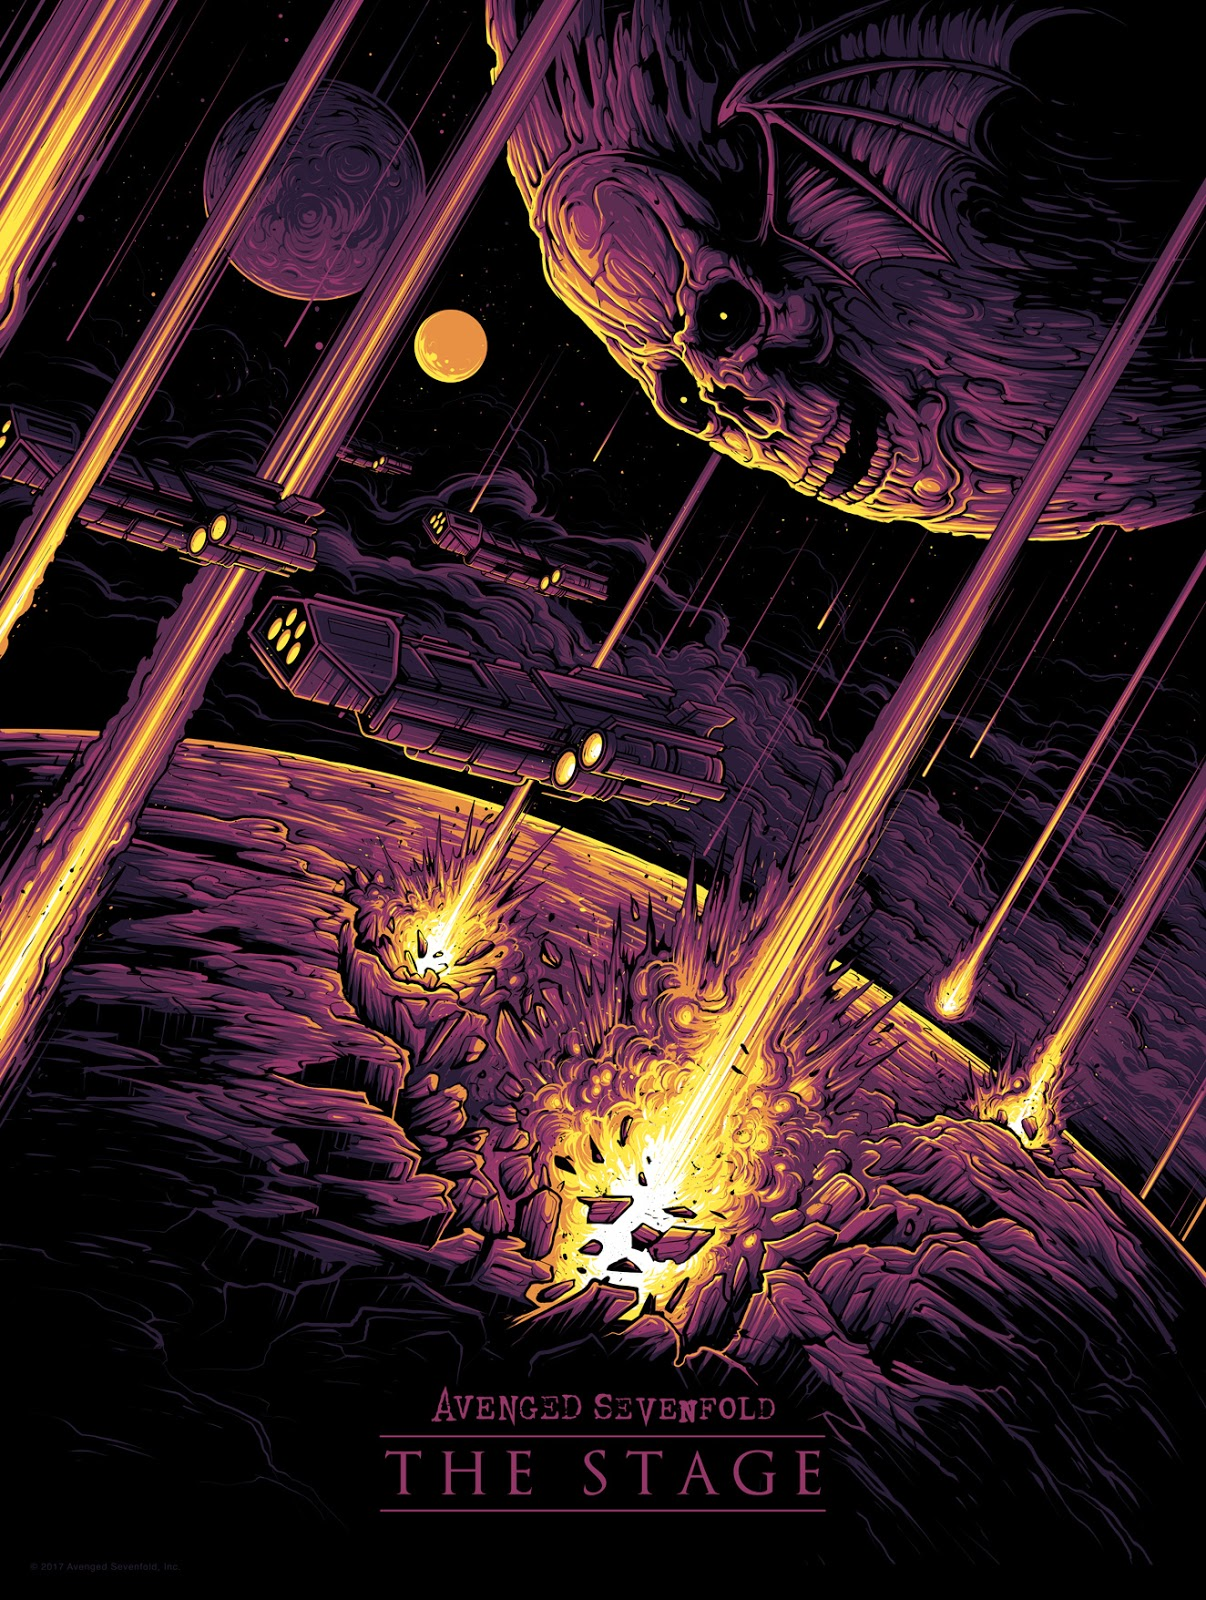 INSIDE THE ROCK POSTER FRAME BLOG: Dan Mumford The Stage Avenged ...